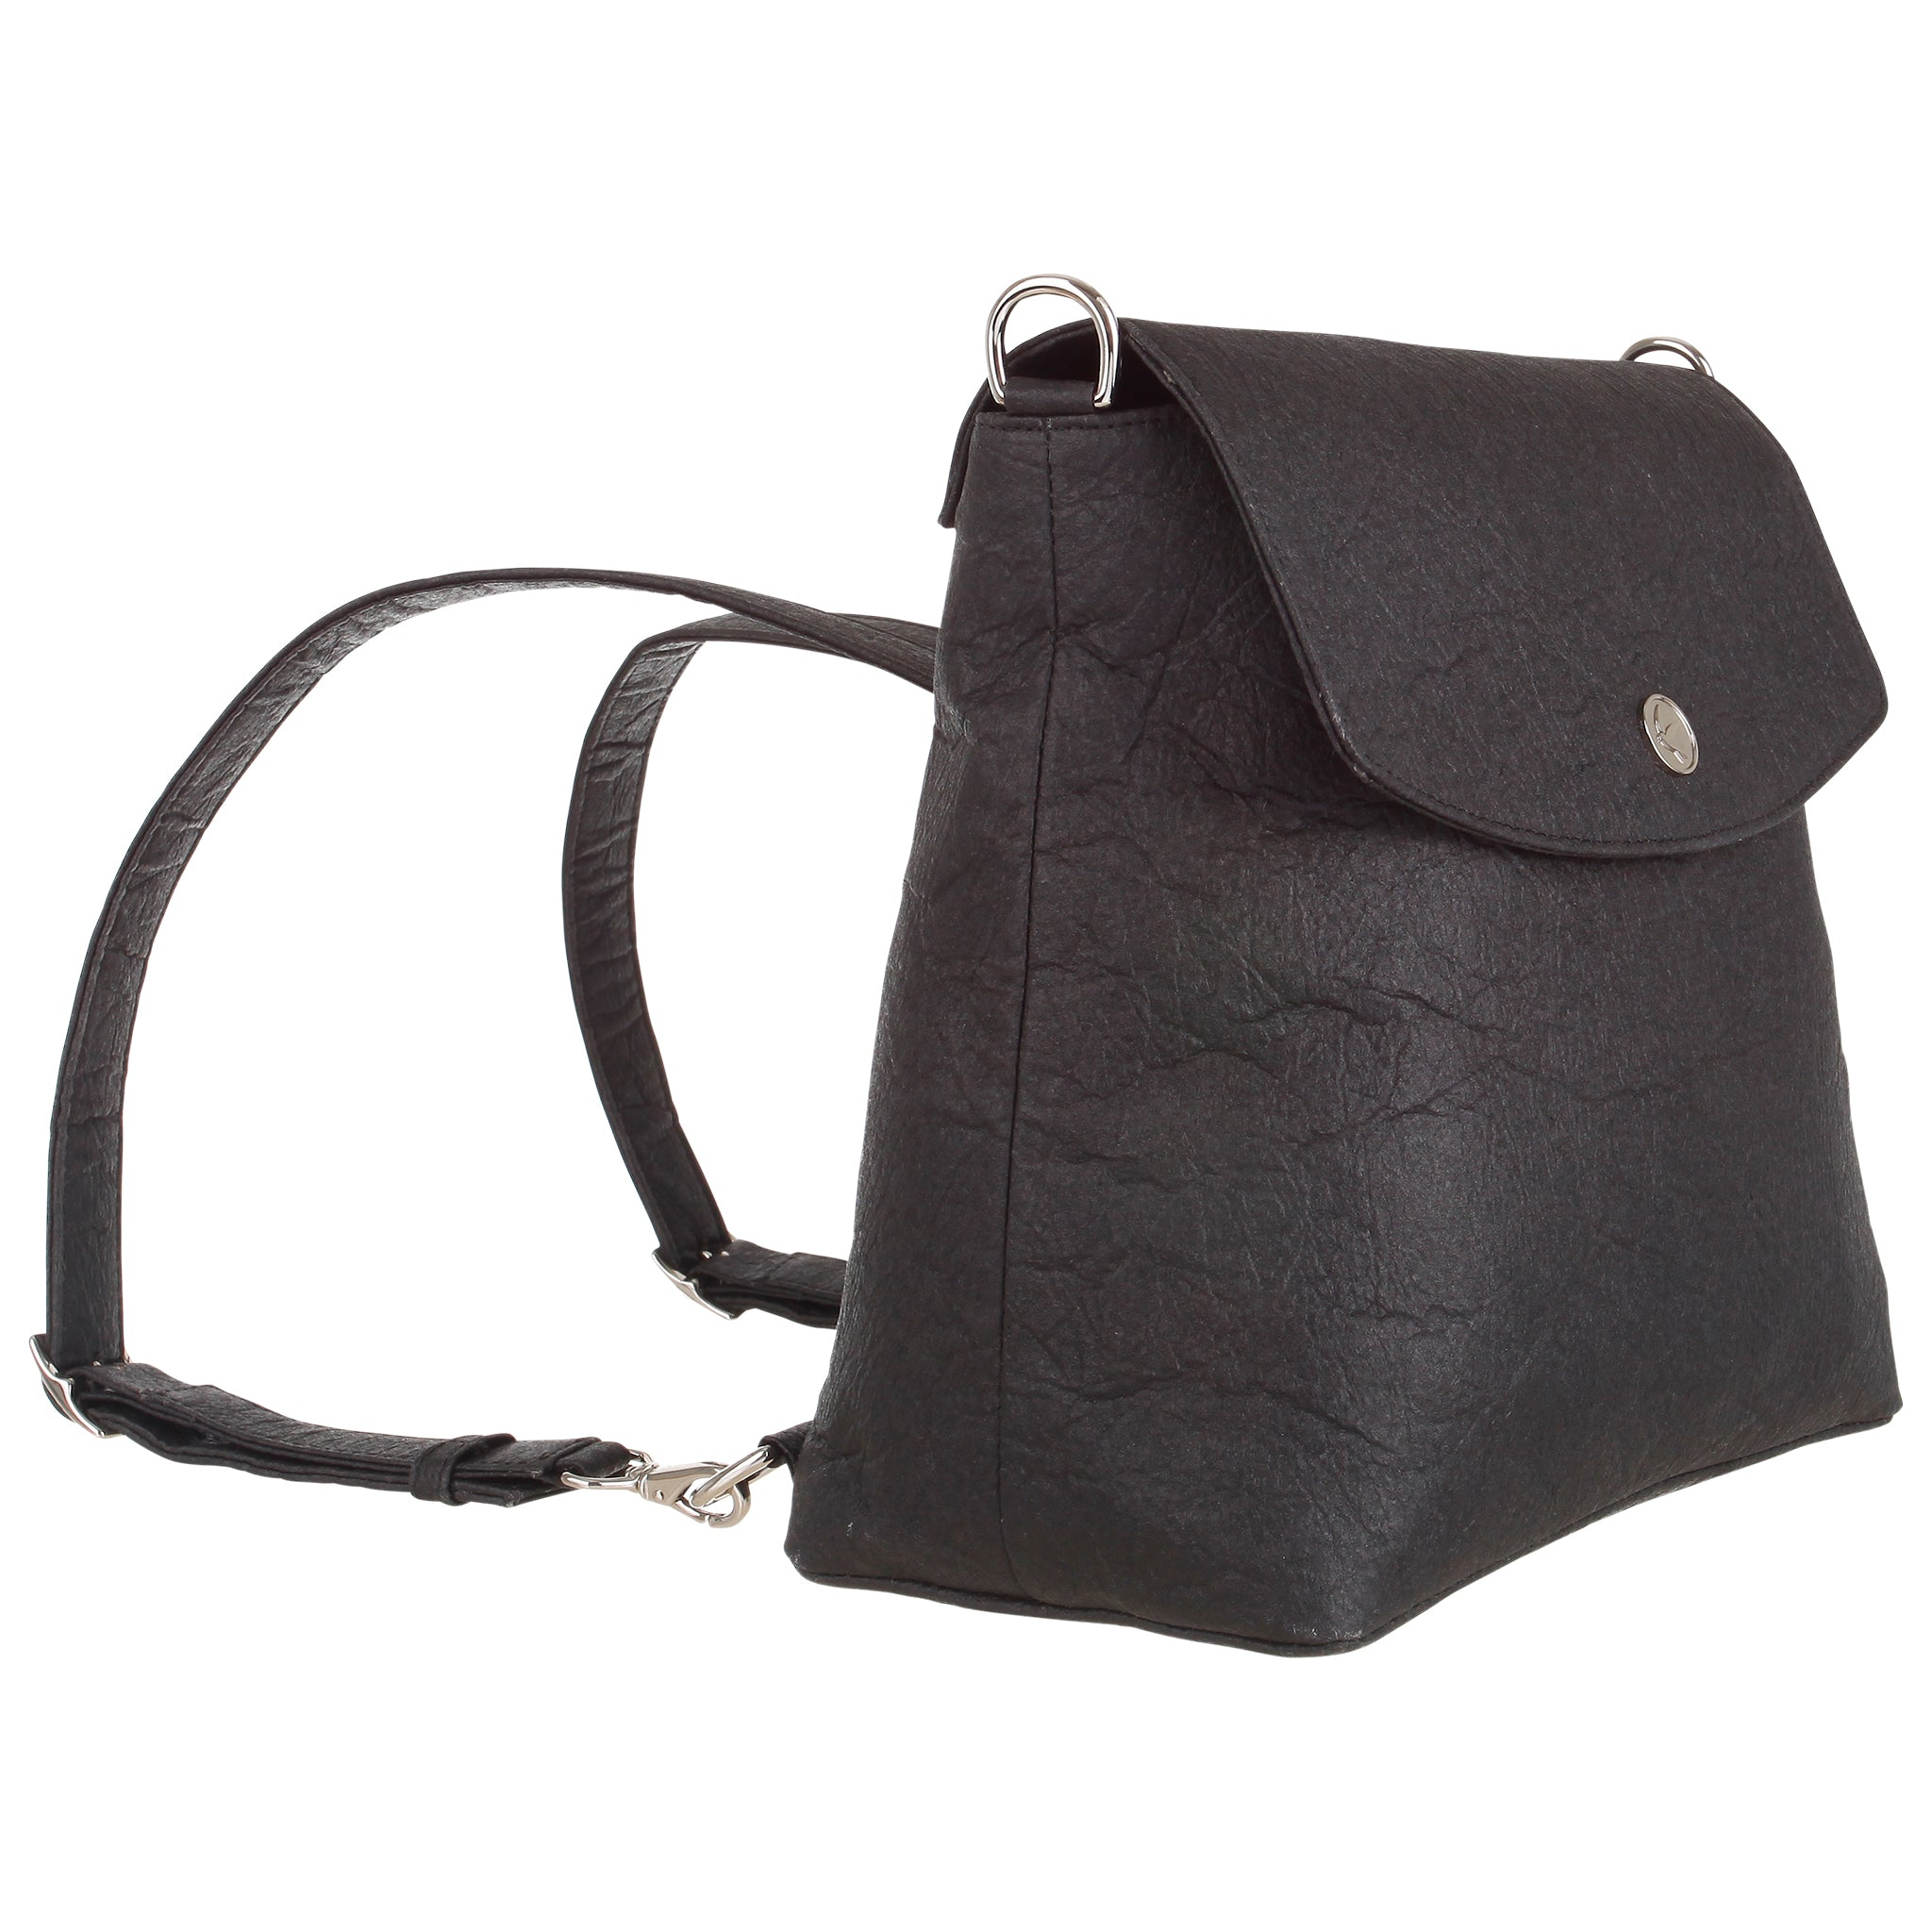 Svala vegan black pinatex Gemma backpack purse